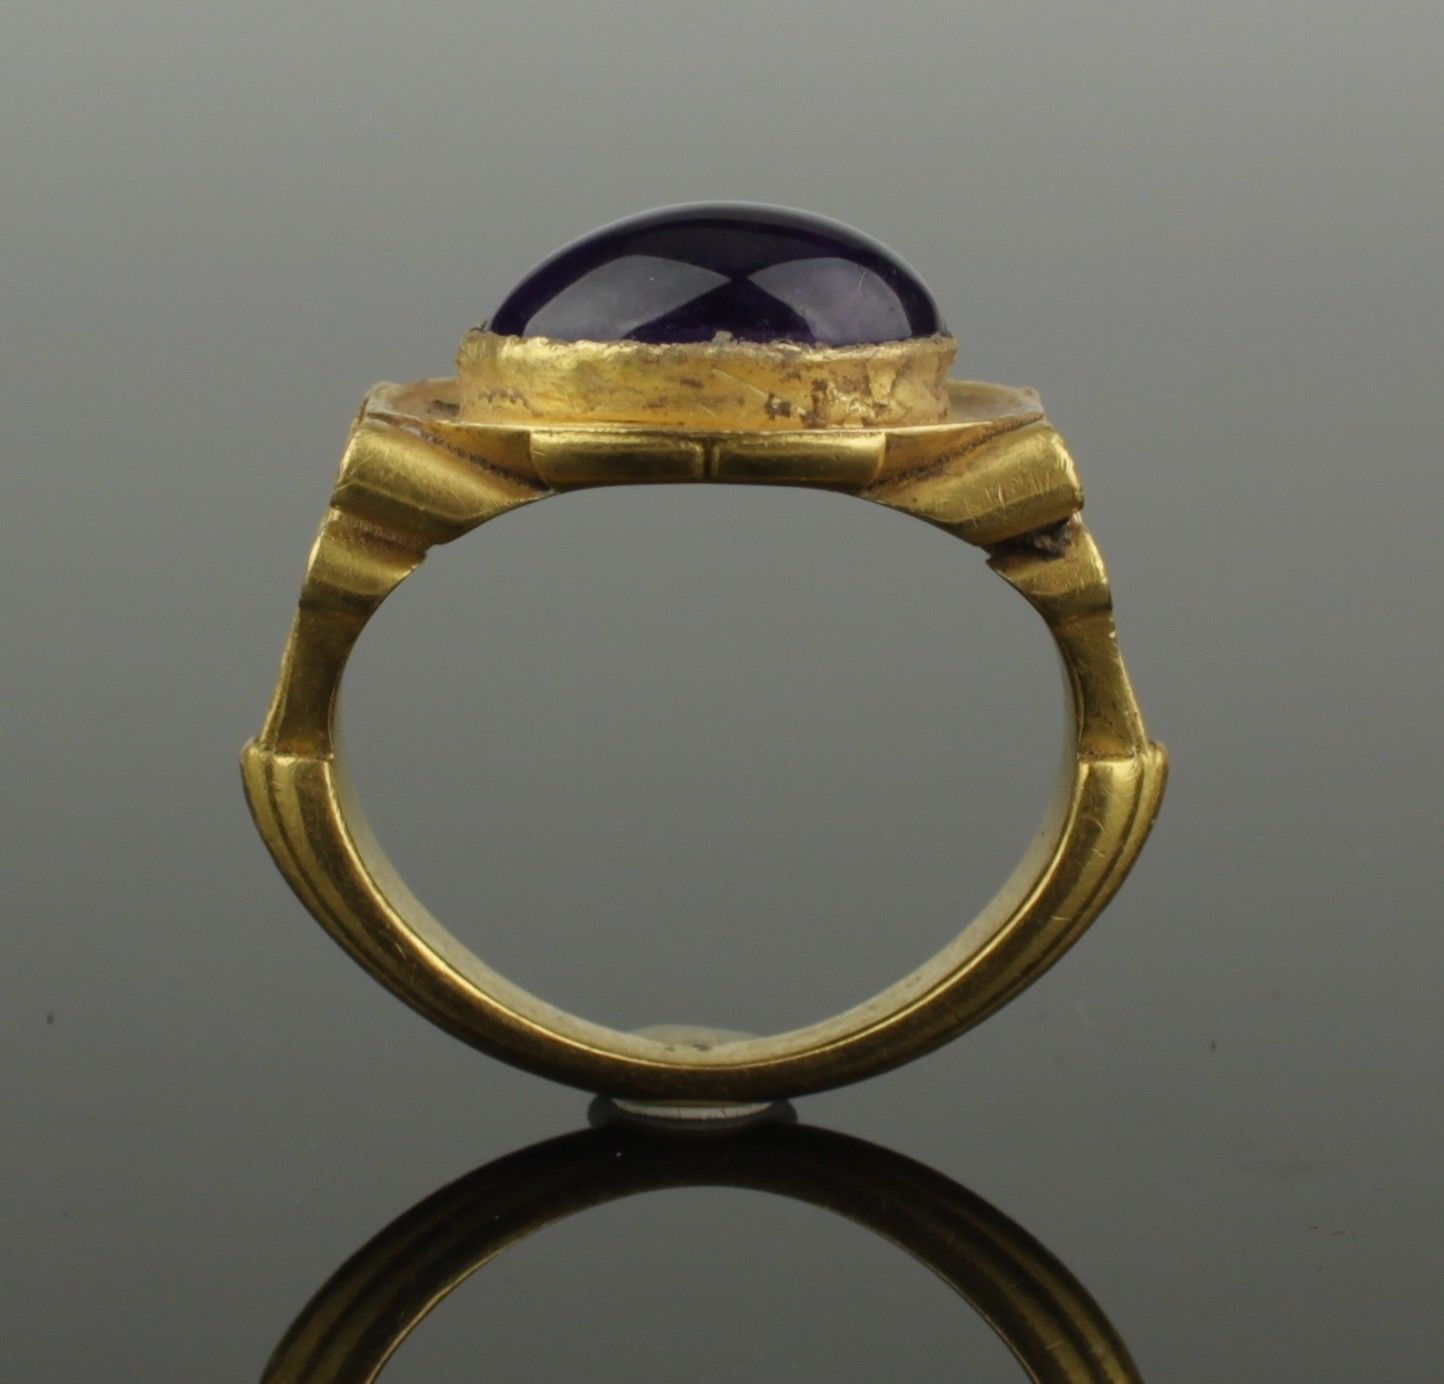 Ancient Roman Rings magnificent ancient roman gold ring with amethyst - 2nd